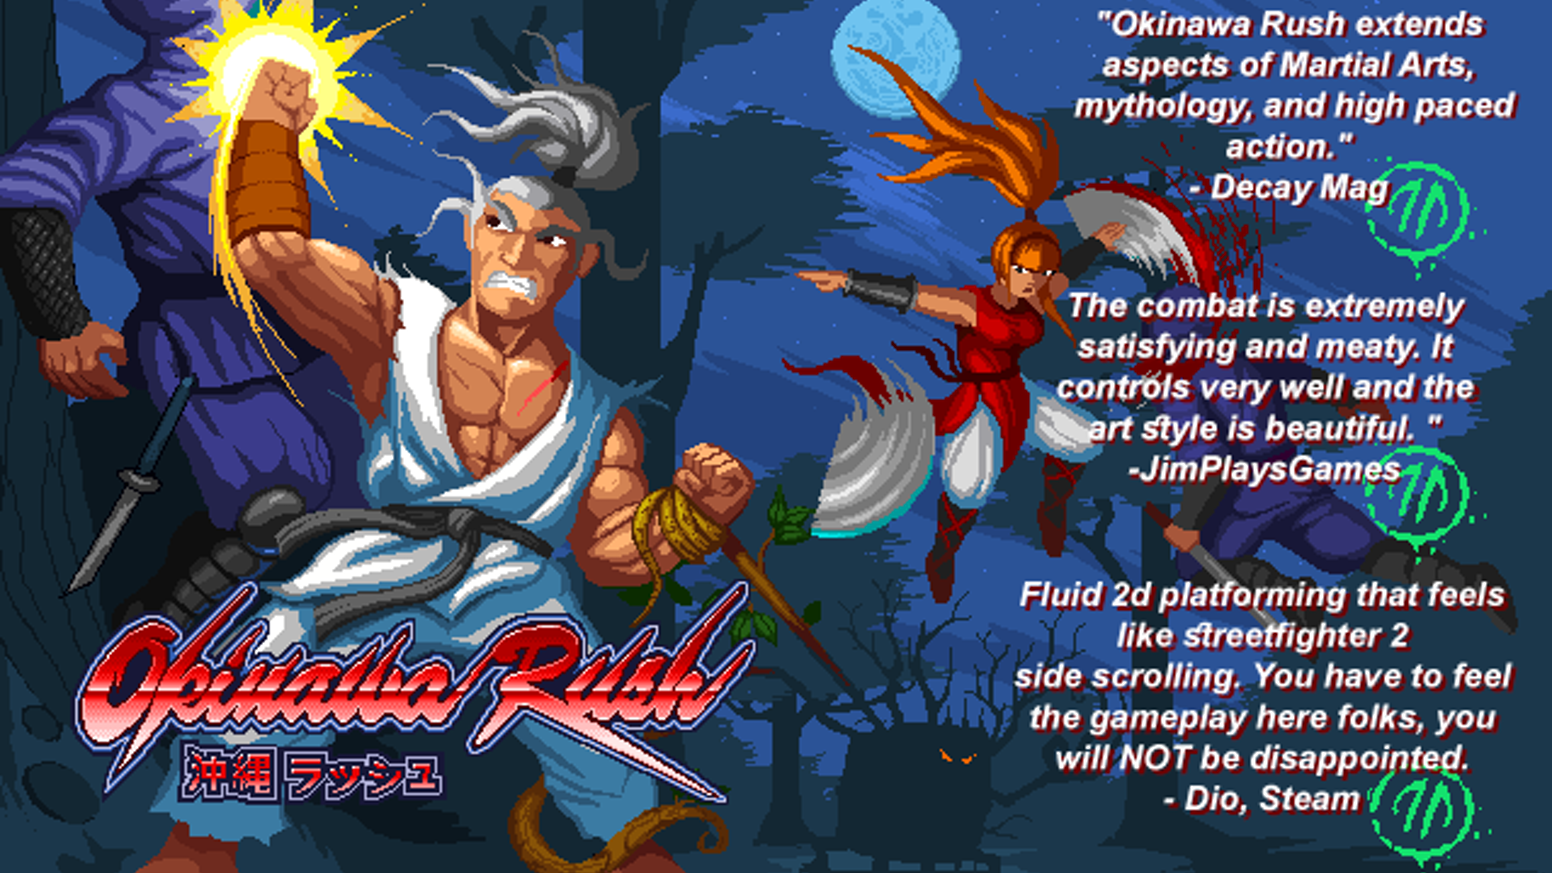 Okinawa Rush A Platform Fighting Game With Rpg Elements By Steven